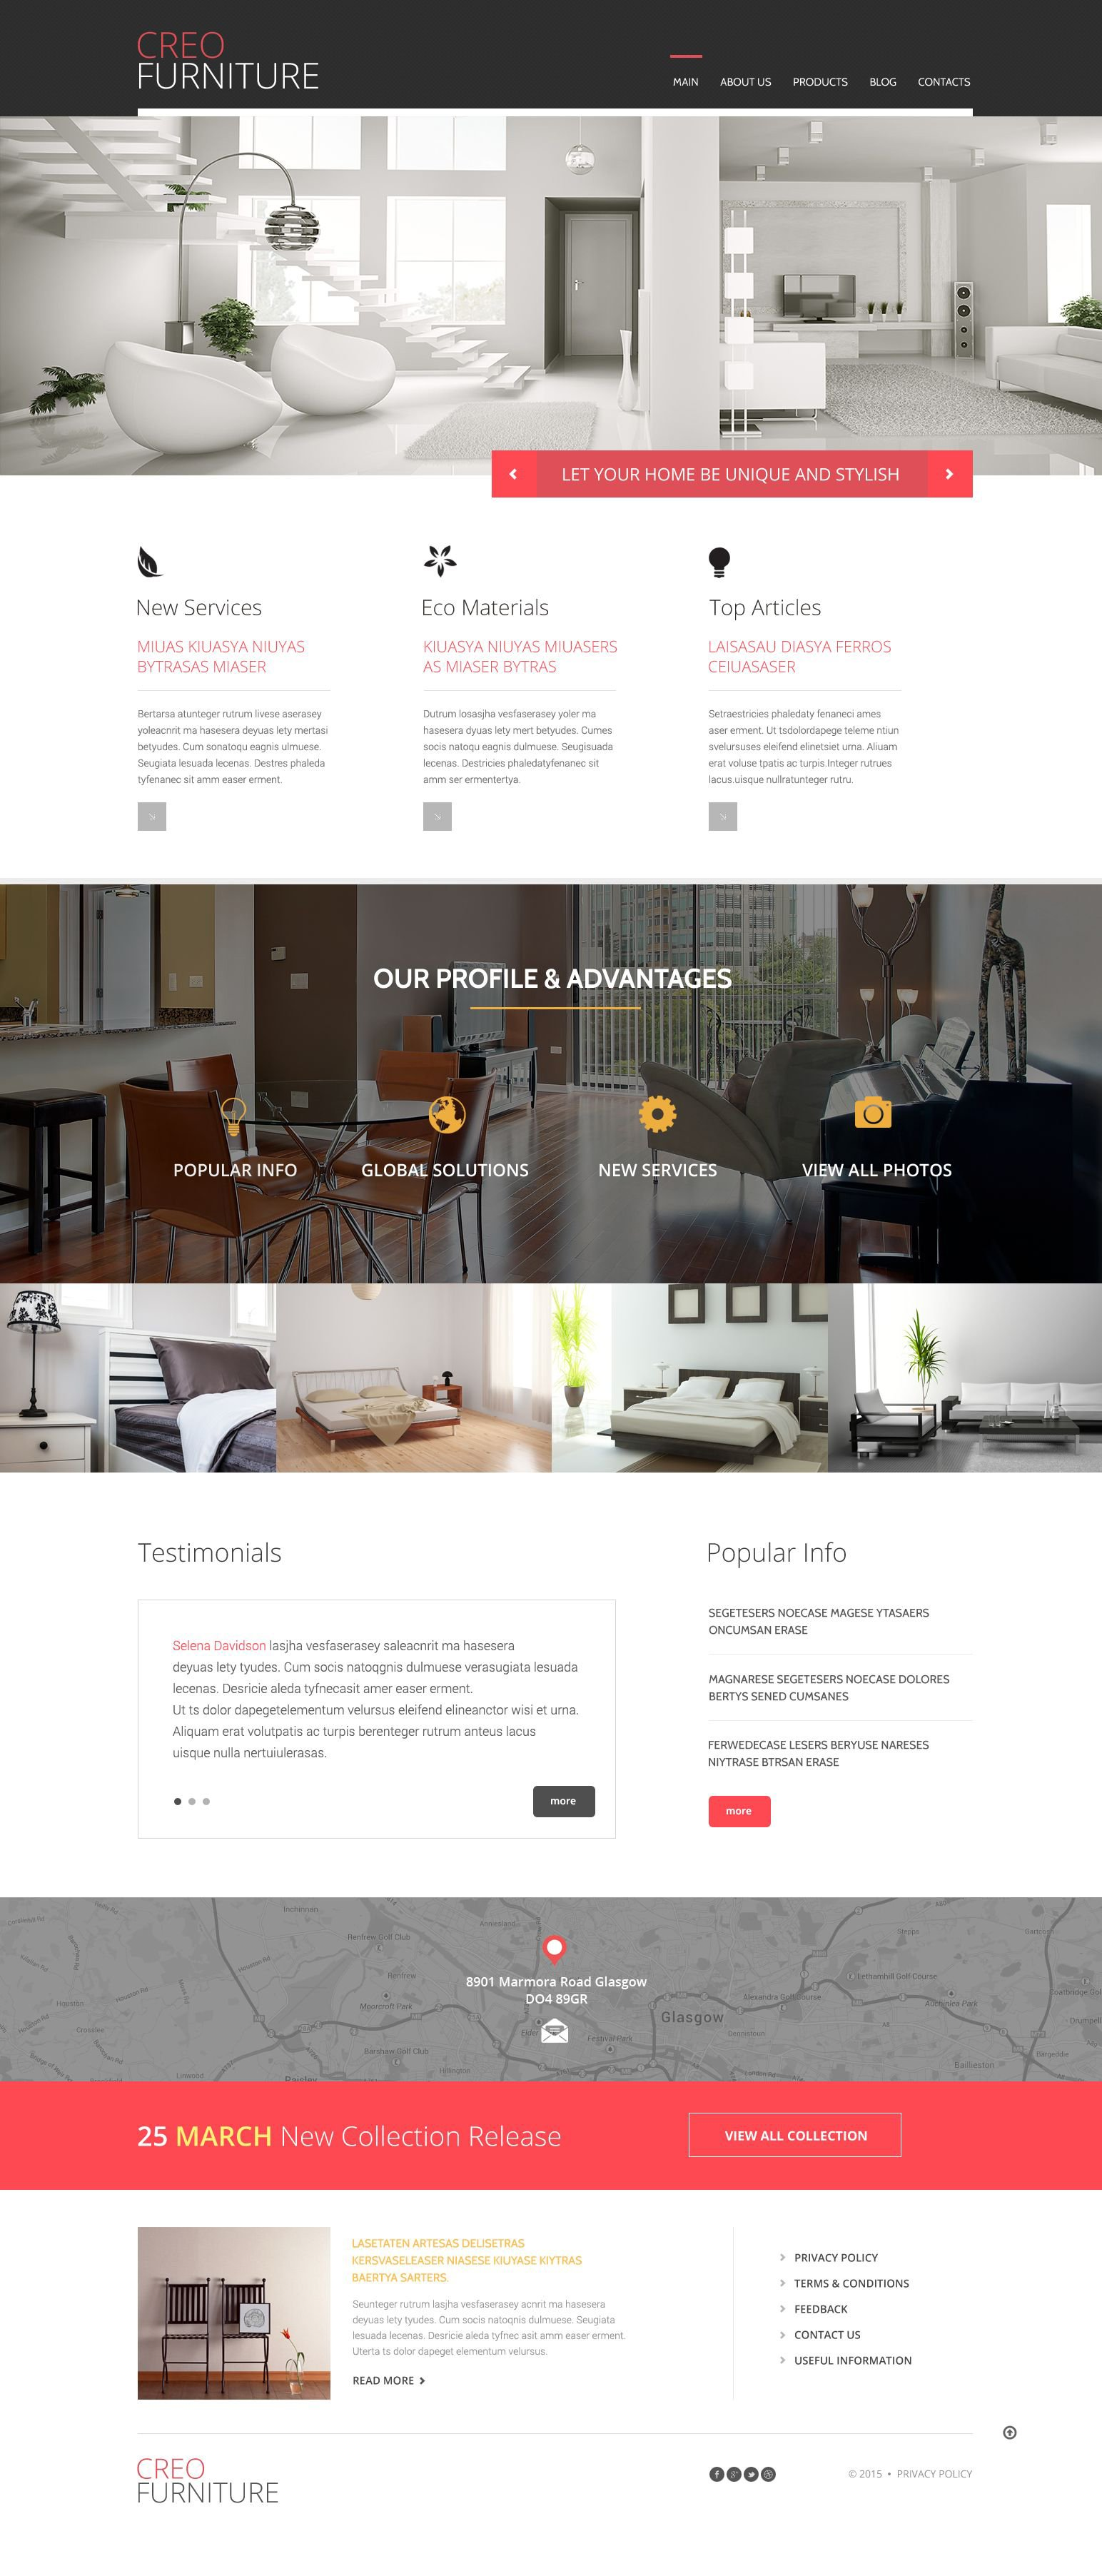 The Creo Furniture WordPress Design 53093, one of the best WordPress themes of its kind (interior & furniture, most popular), also known as creo furniture WordPress template, furniture company design WordPress template, home solution WordPress template, interior WordPress template, profile designer WordPress template, portfolio WordPress template, non-standard WordPress template, creative idea WordPress template, mirror WordPress template, clock WordPress template, cutlery WordPress template, lighting WordPress template, ceiling WordPress template, bathroom WordPress template, kitchen WordPress template, live WordPress template, table WordPress template, chair WordPress template, armchair WordPress template, sofa WordPress template, order WordPress template, client WordPress template, support WordPress template, service WordPress template, decoration WordPress template, style WordPress template, collection WordPress template, catalogue and related with creo furniture, furniture company design, home solution, interior, profile designer, portfolio, non-standard, creative idea, mirror, clock, cutlery, lighting, ceiling, bathroom, kitchen, live, table, chair, armchair, sofa, order, client, support, service, decoration, style, collection, catalogue, etc.